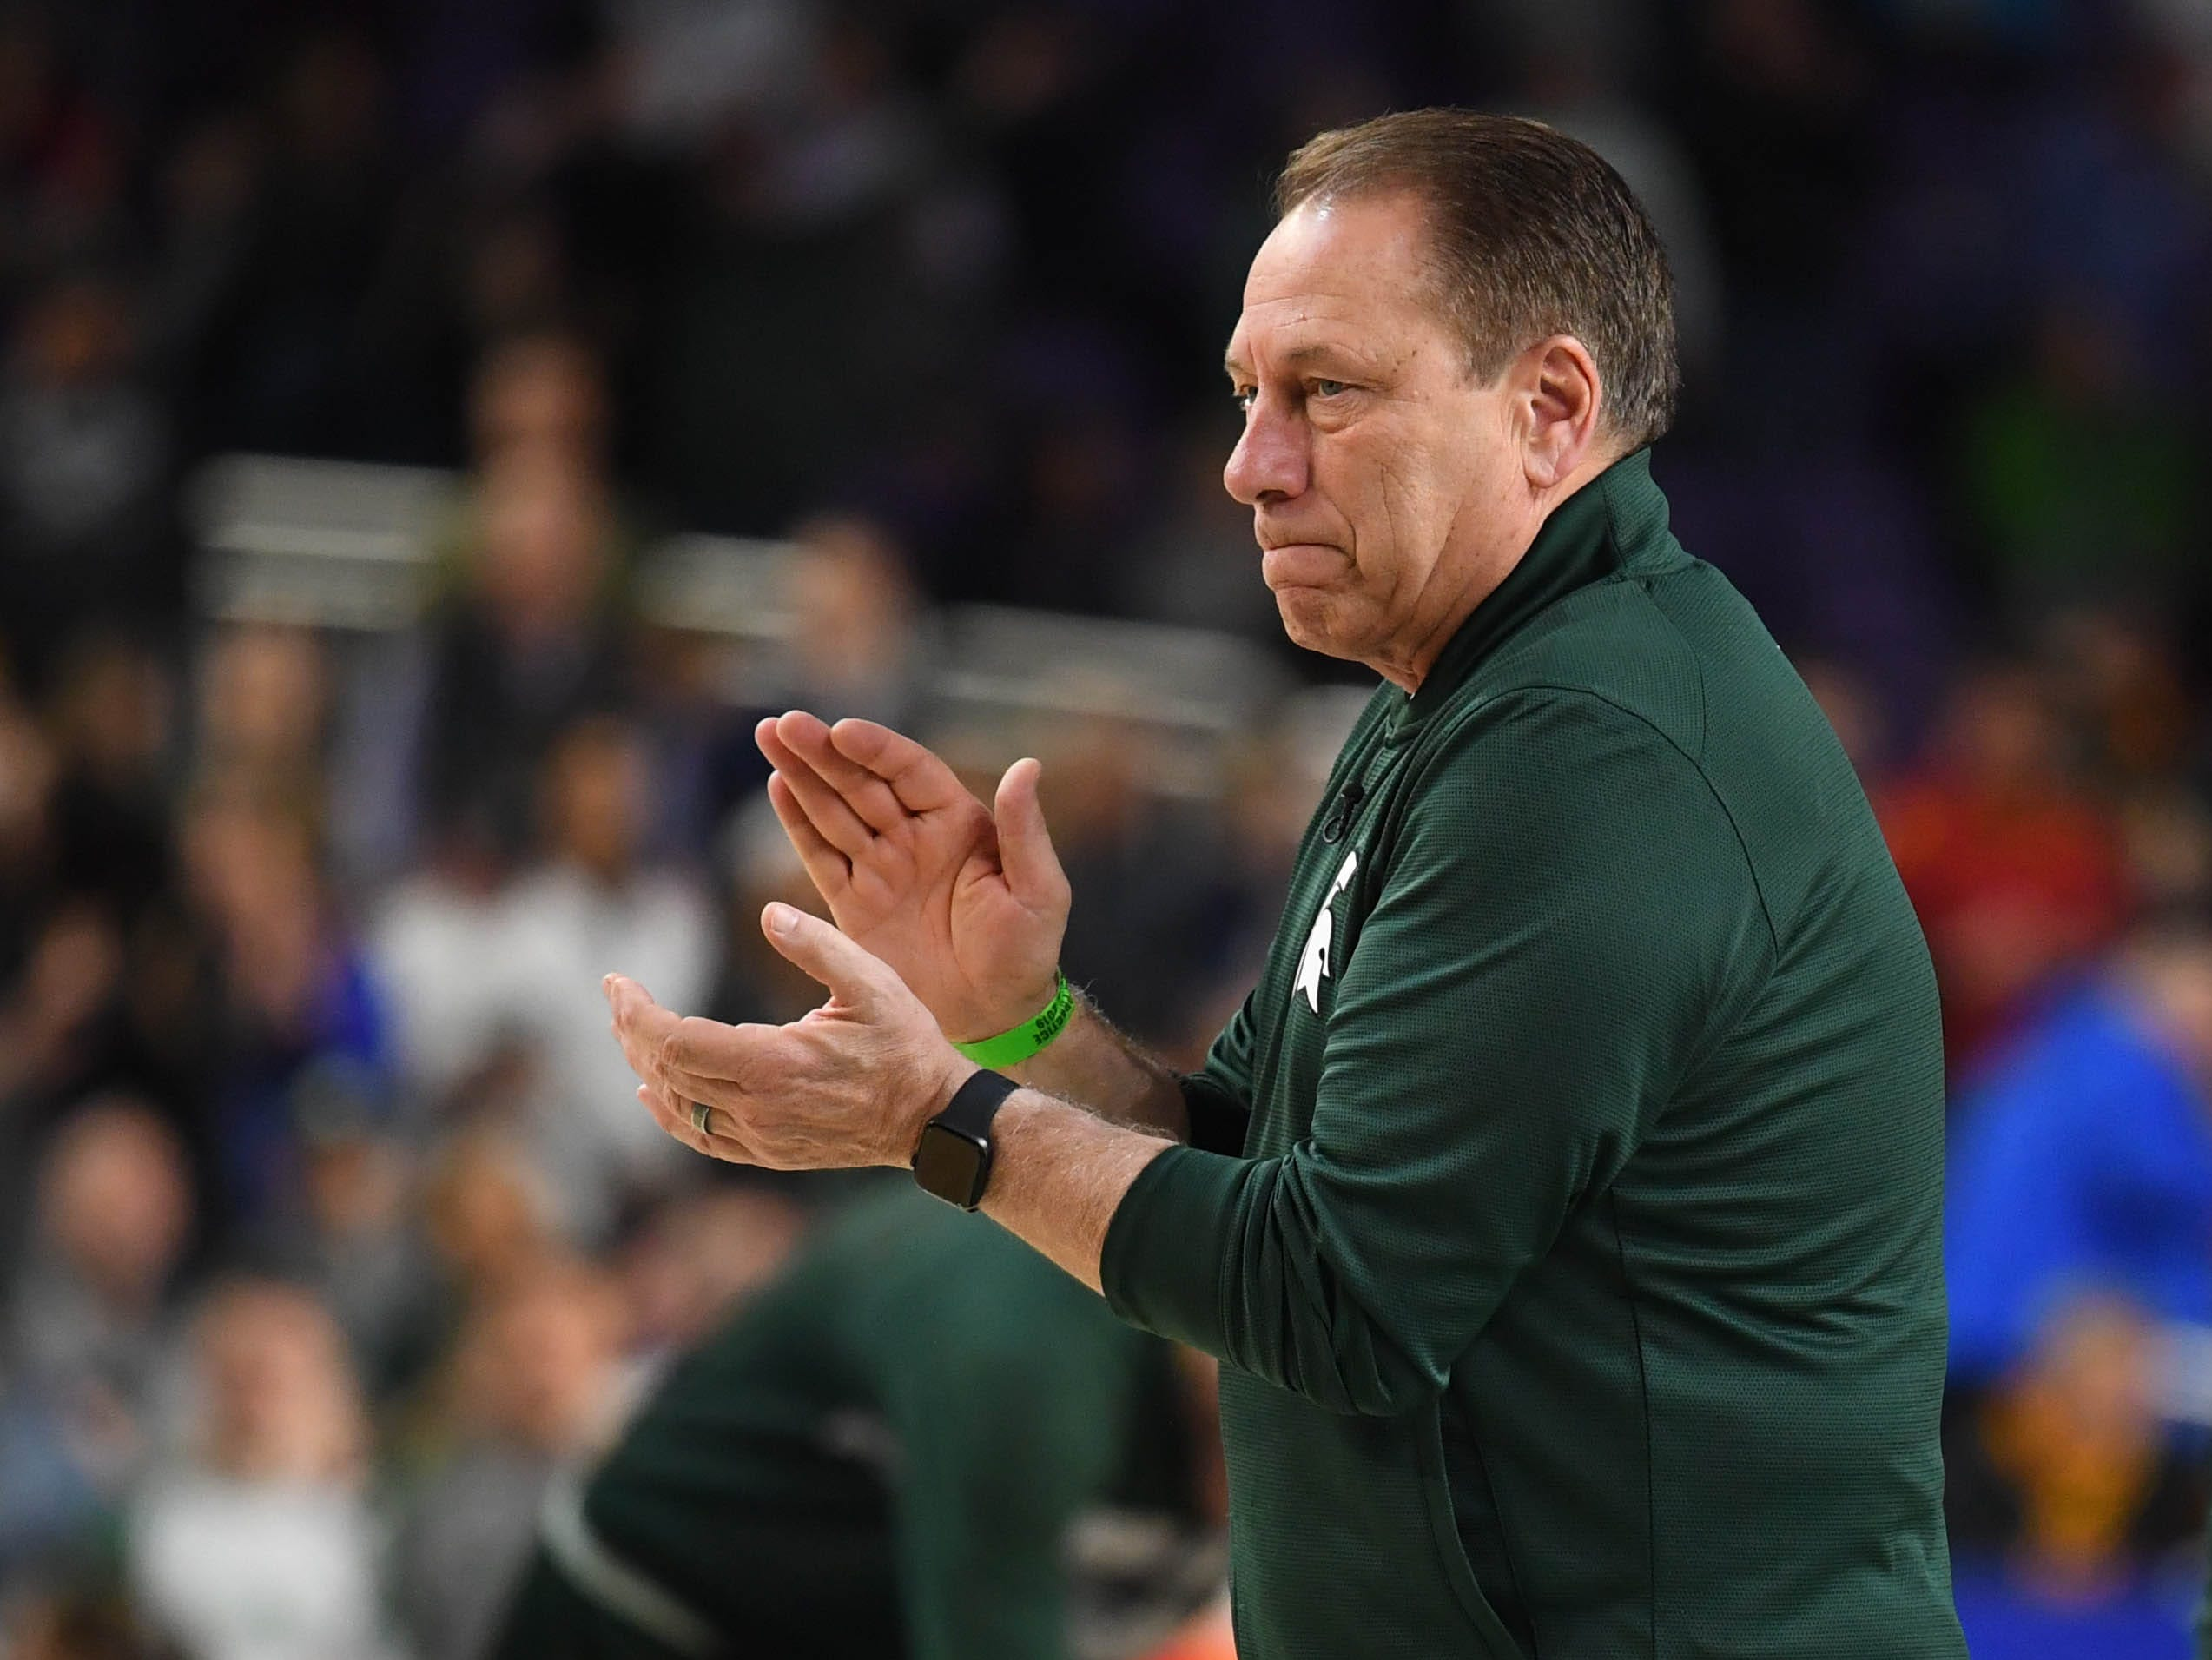 Apr 5, 2019; Minneapolis, MN, USA; Michigan State Spartans head coach Tom Izzo during practice for the 2019 men's Final Four at US Bank Stadium. Mandatory Credit: Robert Deutsch-USA TODAY Sports